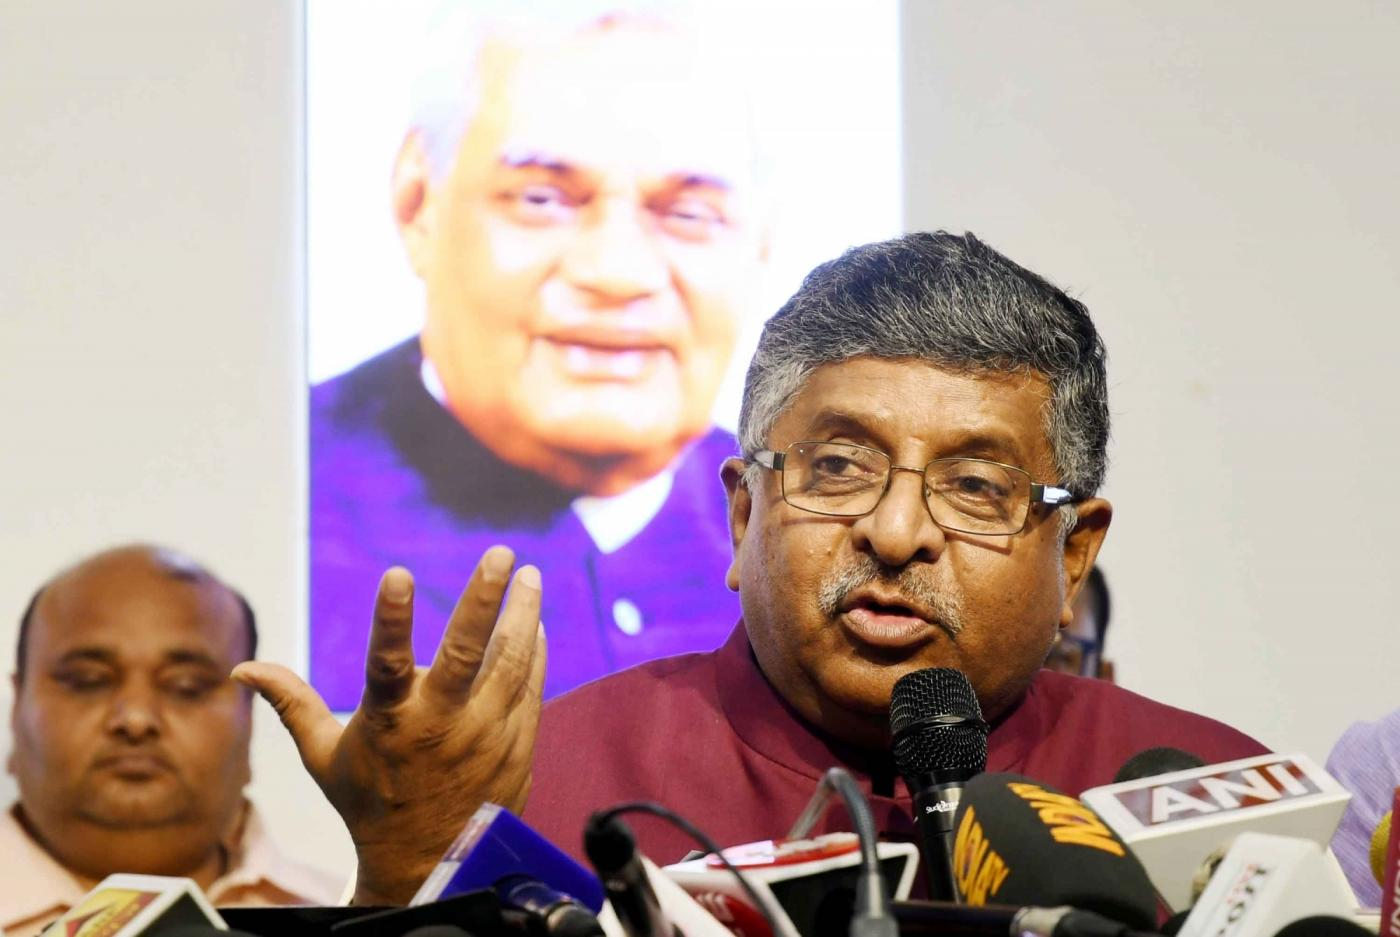 Patna: Union Minister and BJP leader Ravi Shankar Prasad addresses a press conference, in Patna on March 31, 2019. (Photo: IANS) by .